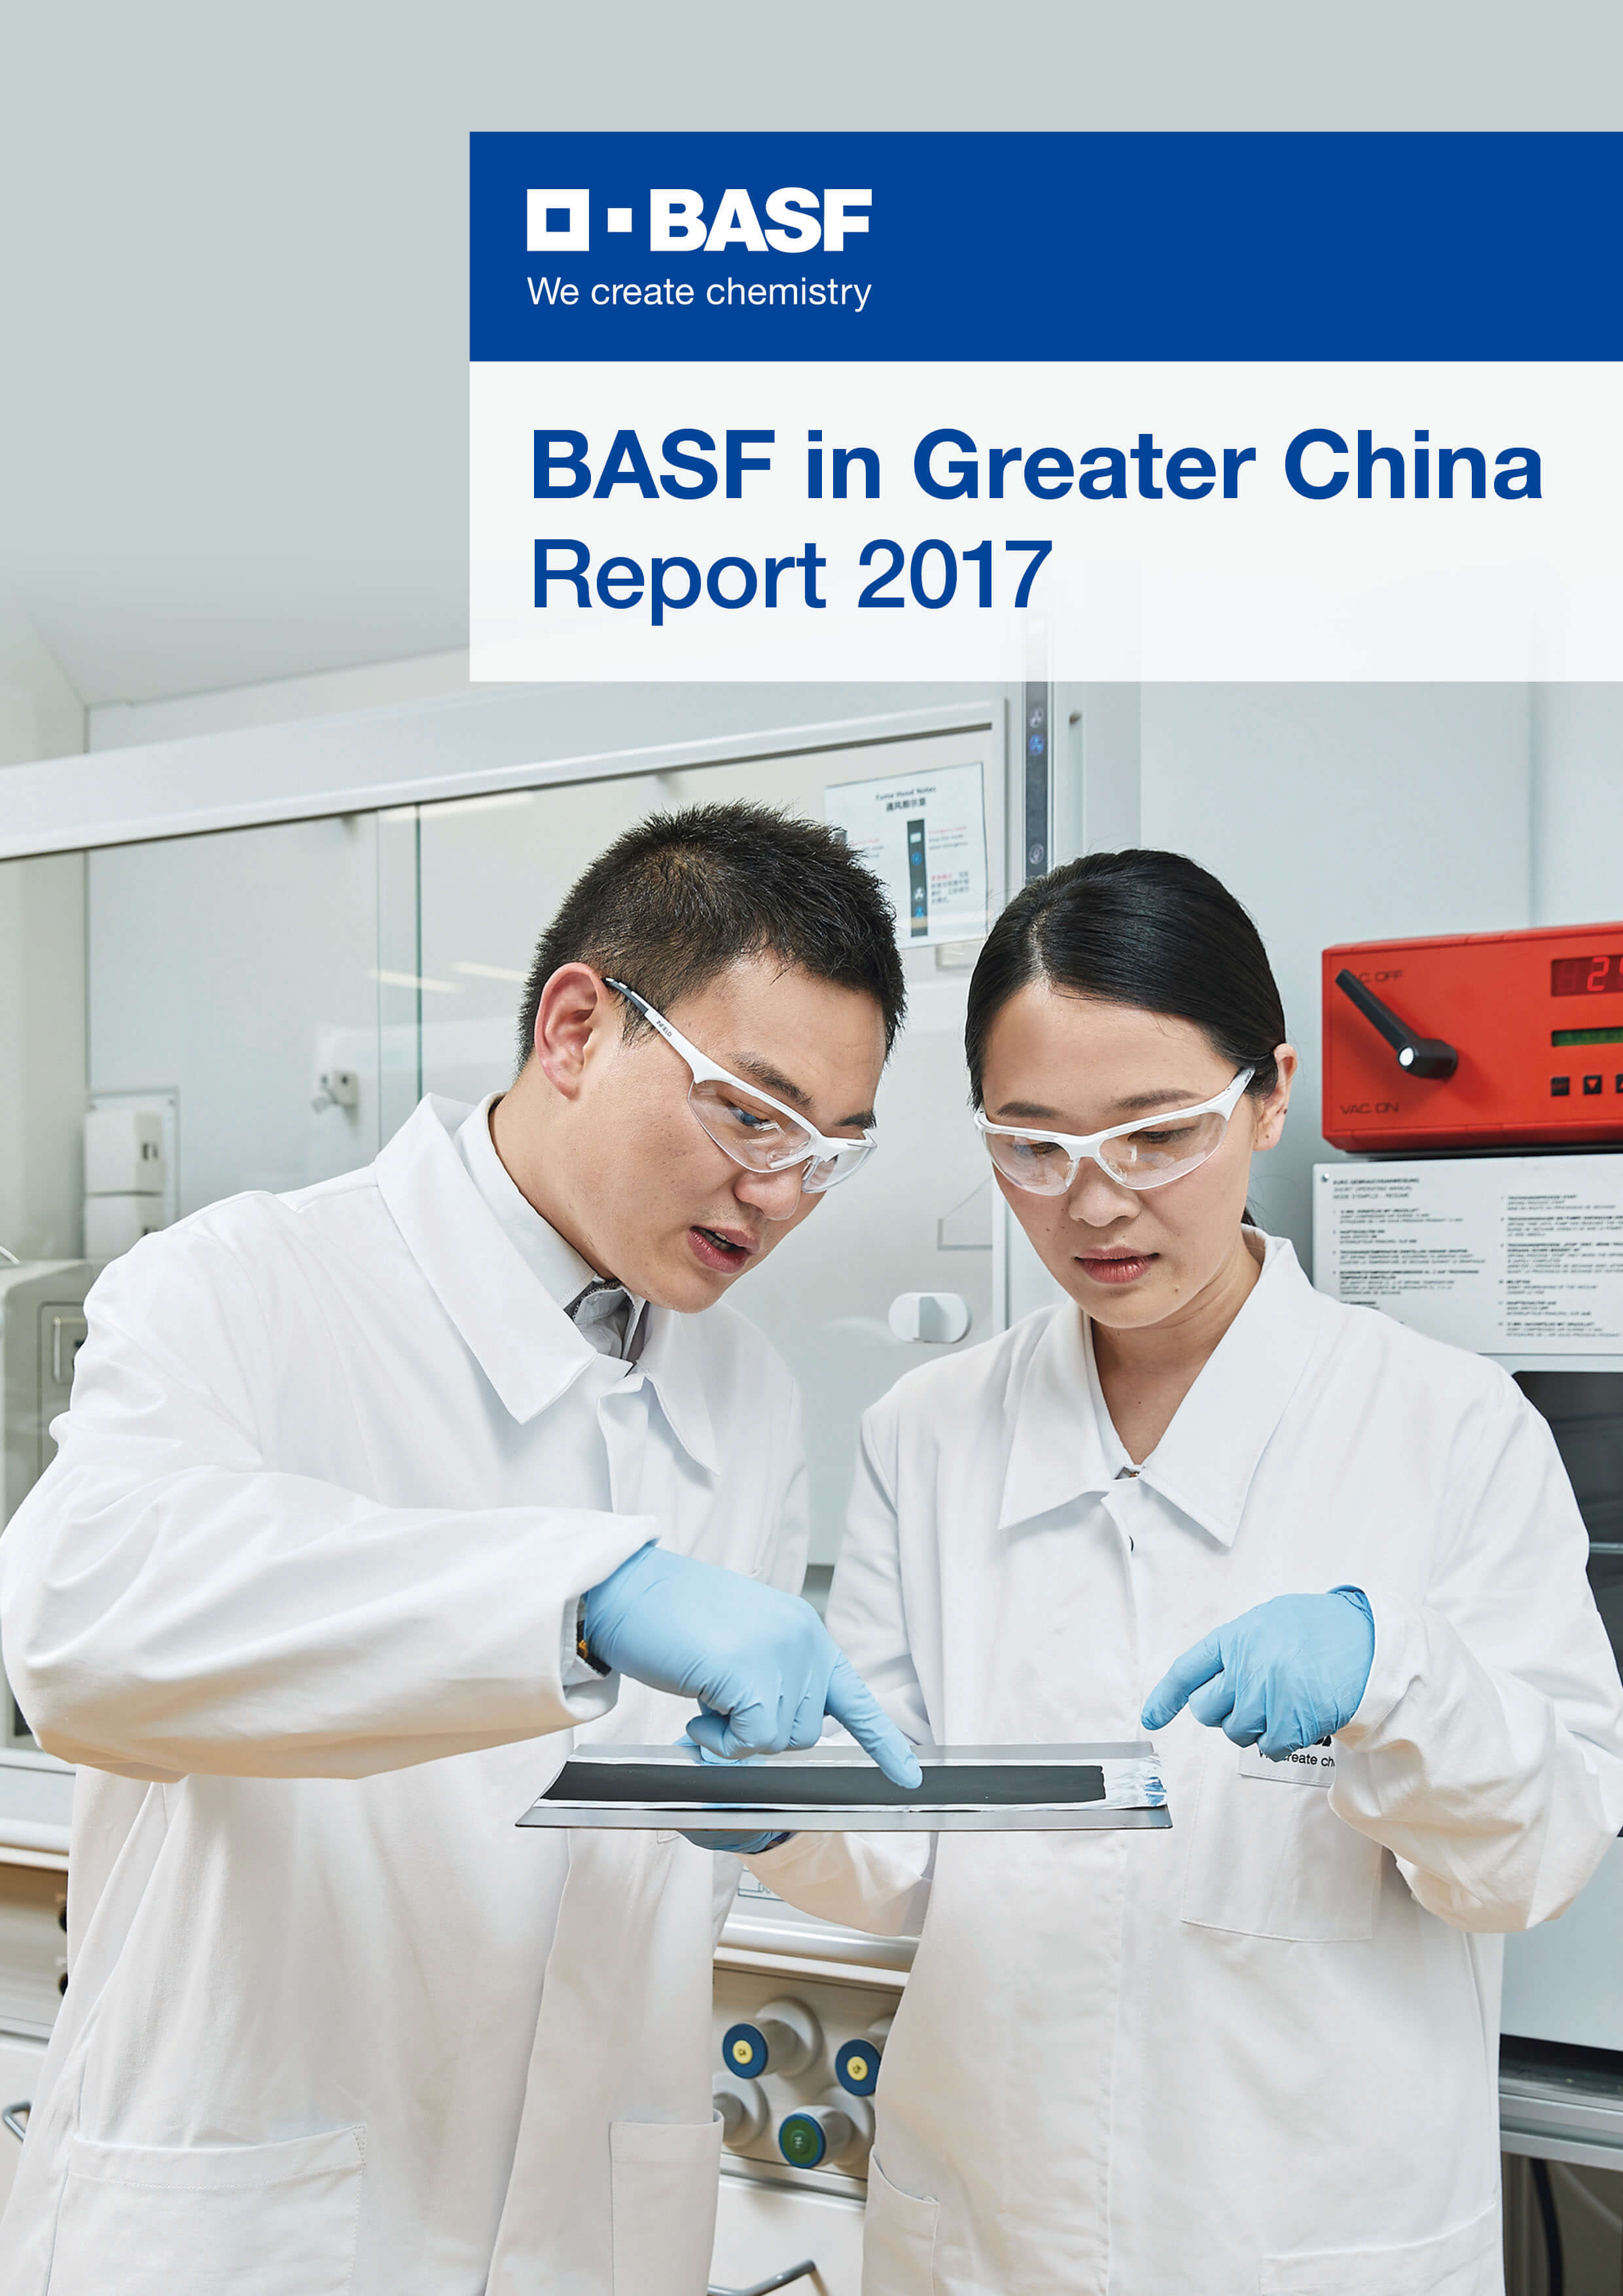 BASF publishes annual integrated report in Greater China for 10th